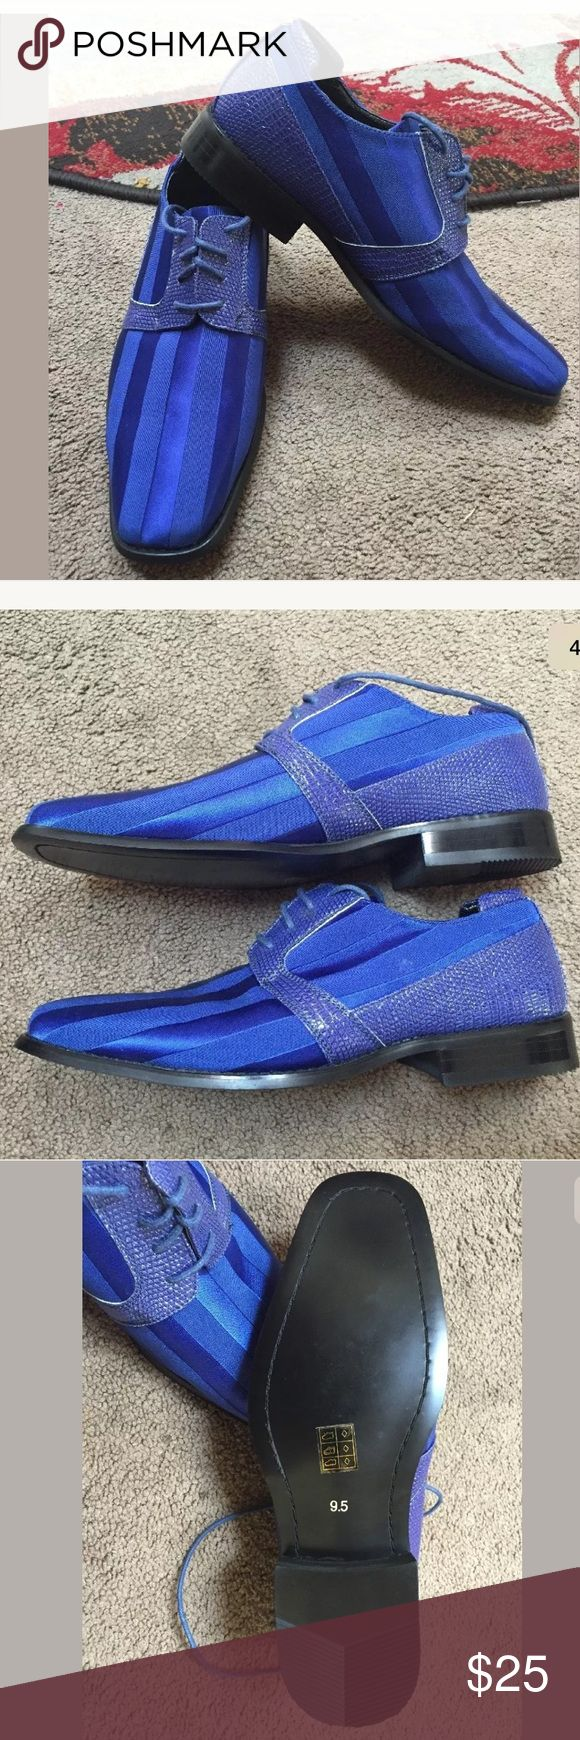 🔵Silk royal blue shoes NEW!🔵 New! Viotti silk mens royal blue dress shoes  Size: 9.5.  Please zoom in on the pictures!  Smoke and pet free house Shoes Oxfords & Derbys